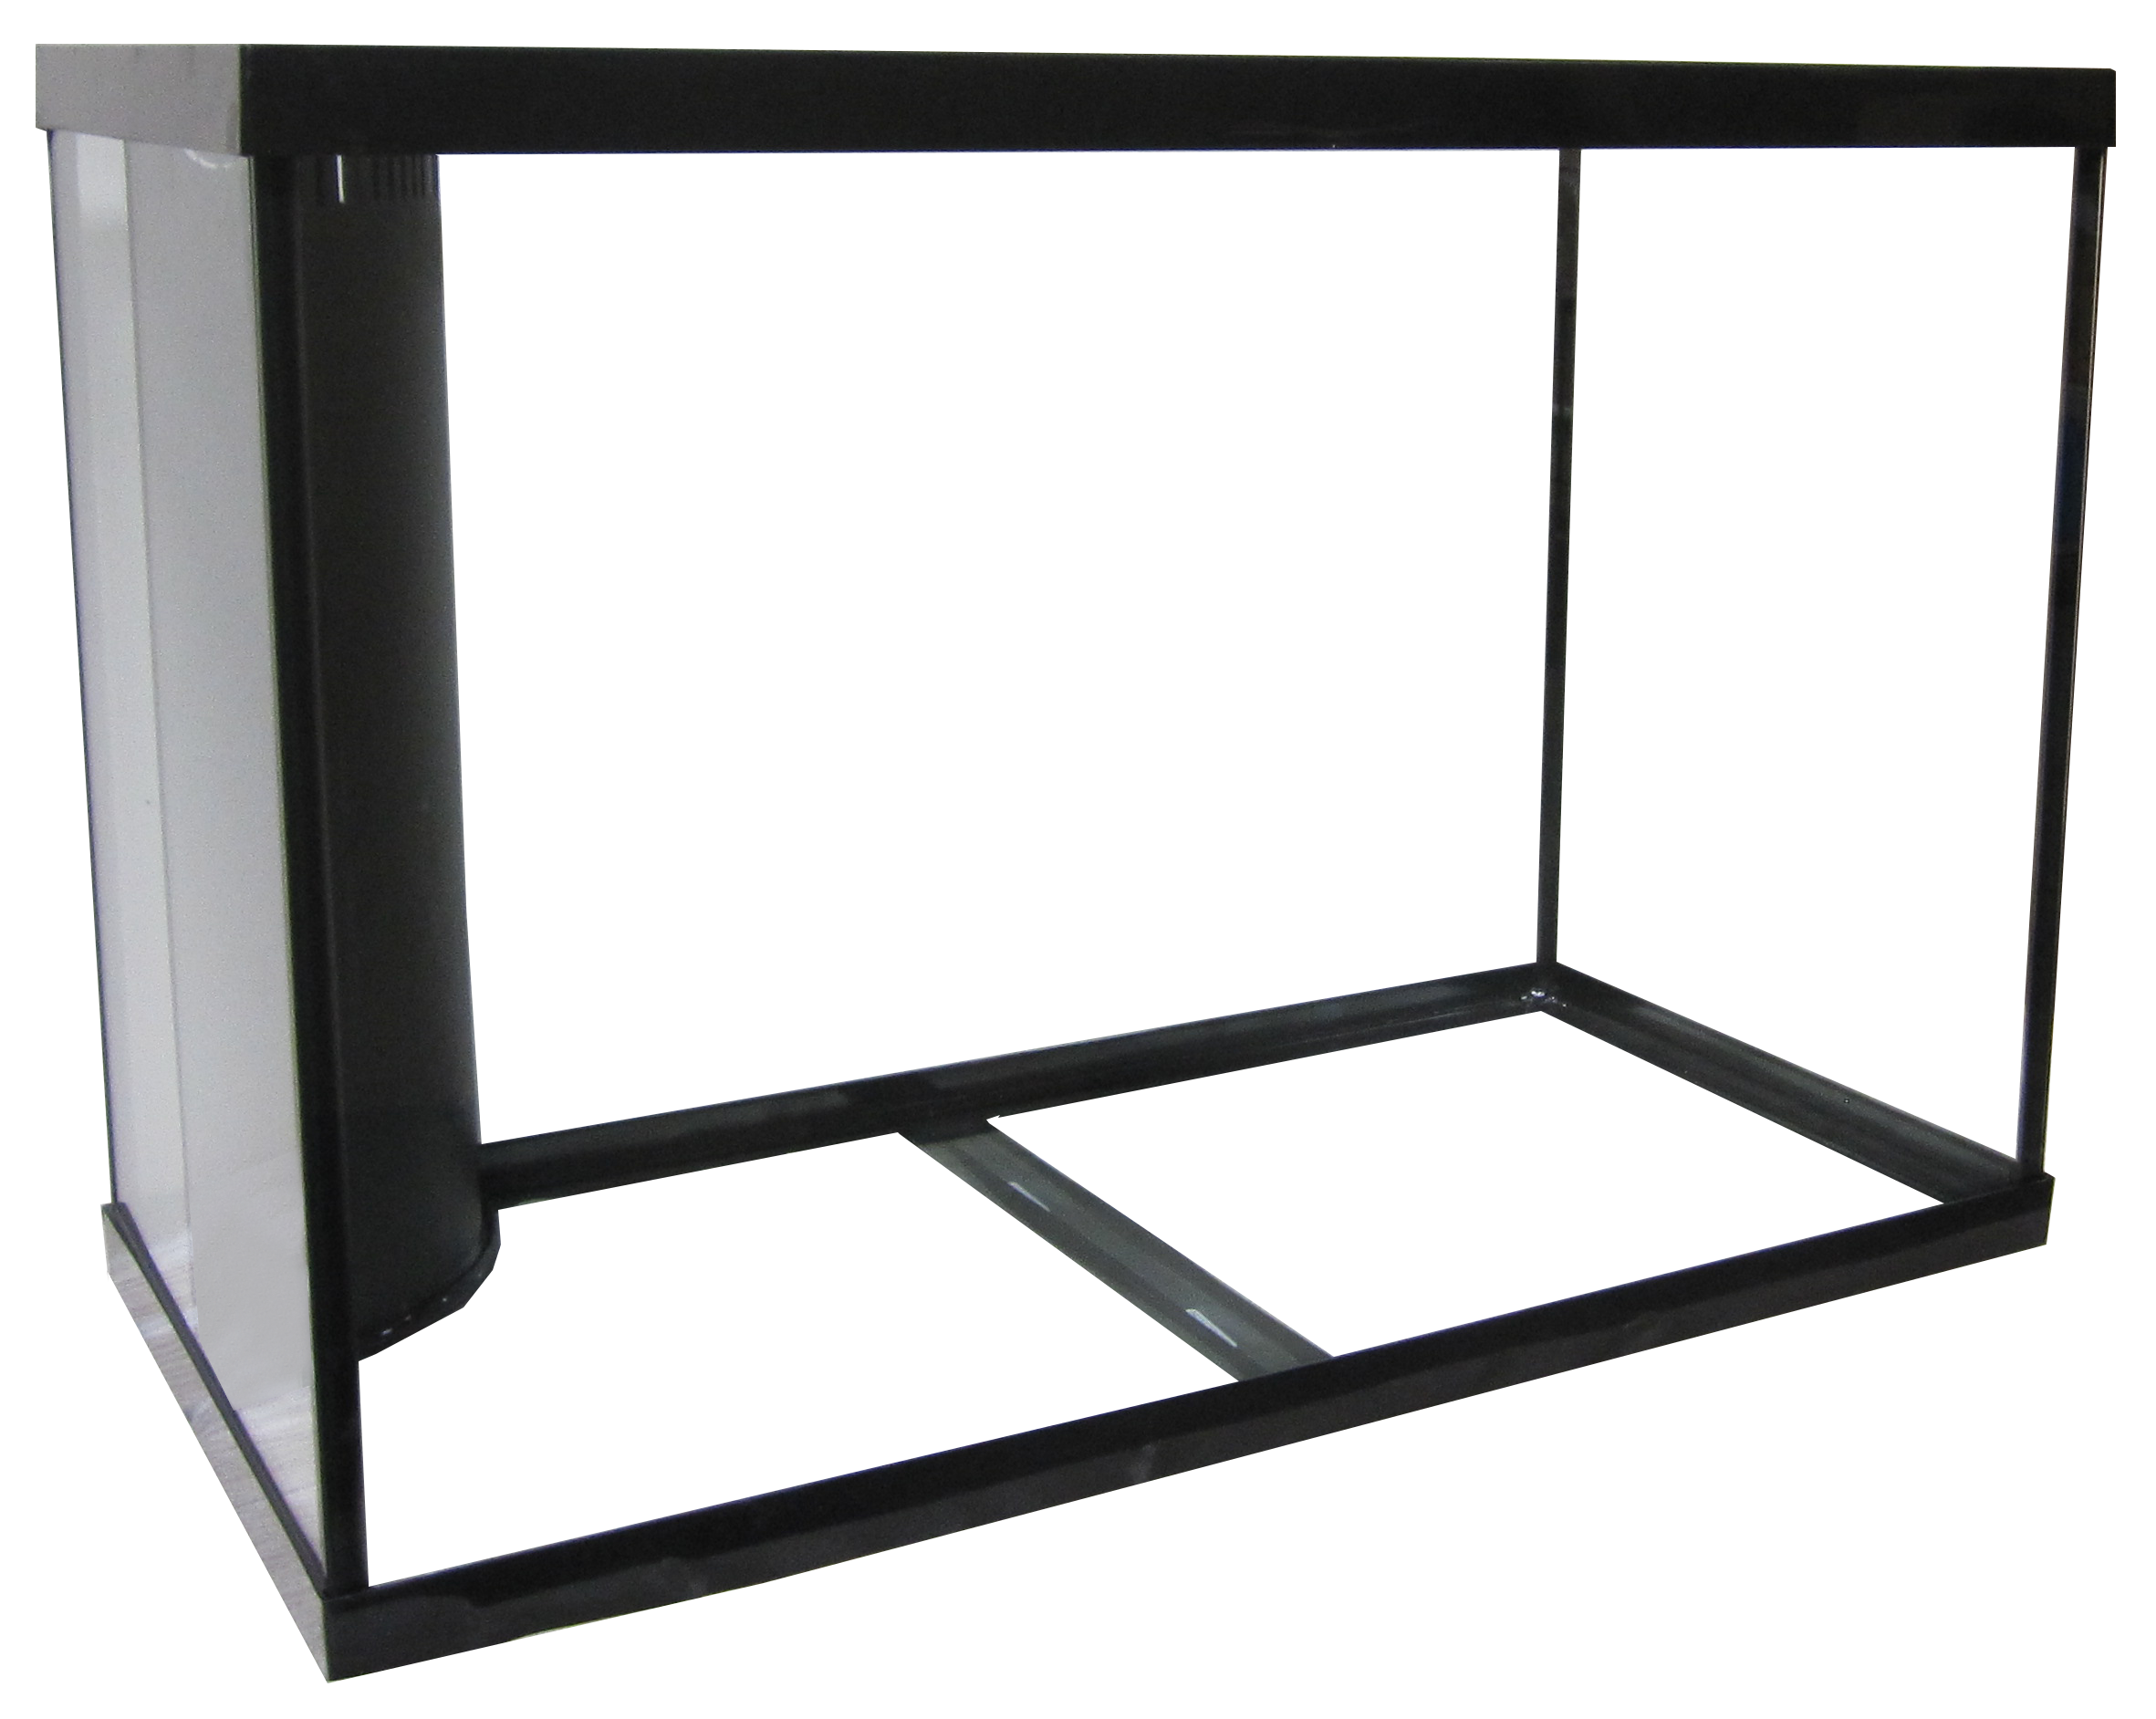 "65 Regular Reef Ready Aquarium - 36x18x24""   SKU#:AM18065  UPC#: 7-49729-18065-4  Product Dimension: 36.5""x18.5""x25""  Capacity: Approximately 65 gallons  Weight:"